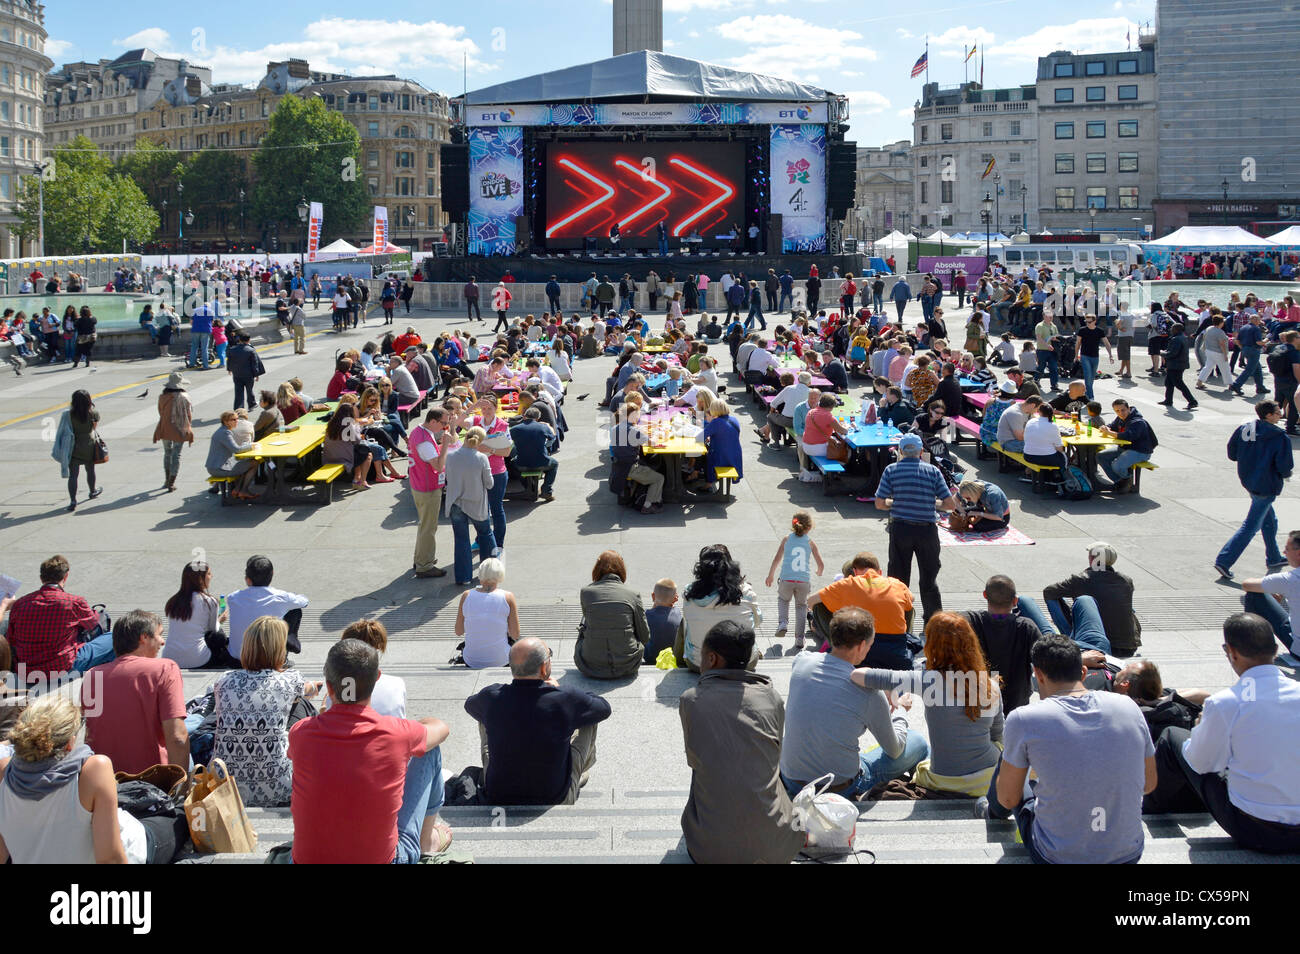 Picnic Tables placed in Trafalgar Square in front of large TV screen and stage during London 2012 Olympic and Paralympic Stock Photo